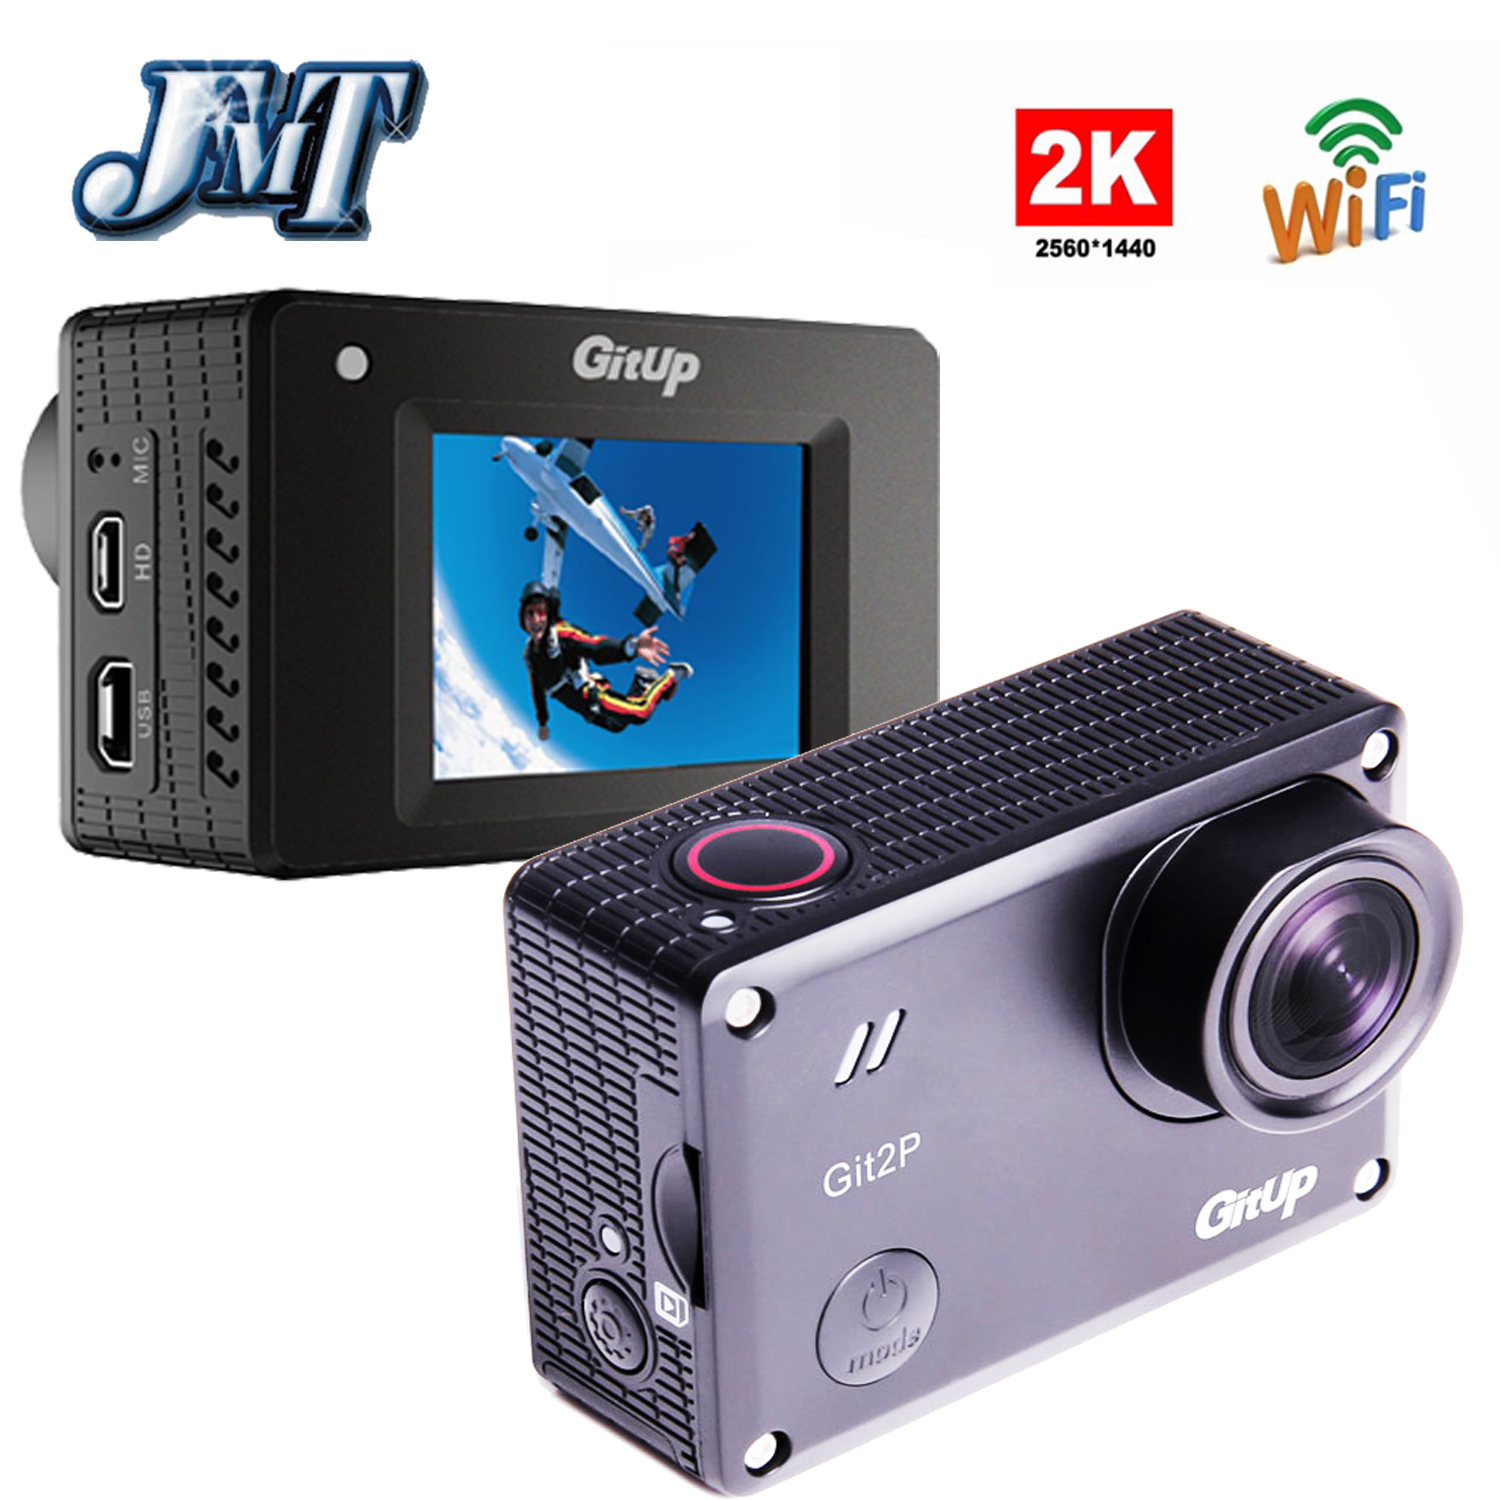 JMT GitUP Git2P Action Camera Standard 2K Wifi Sports DV PRO Full HD 1080P 30m Waterproof mini Camcorder 1.5 inch Novatek 96660 free shipping gitup git2 16m ultra 2k wifi dv sports action helemet camera 18 in 1 accessories